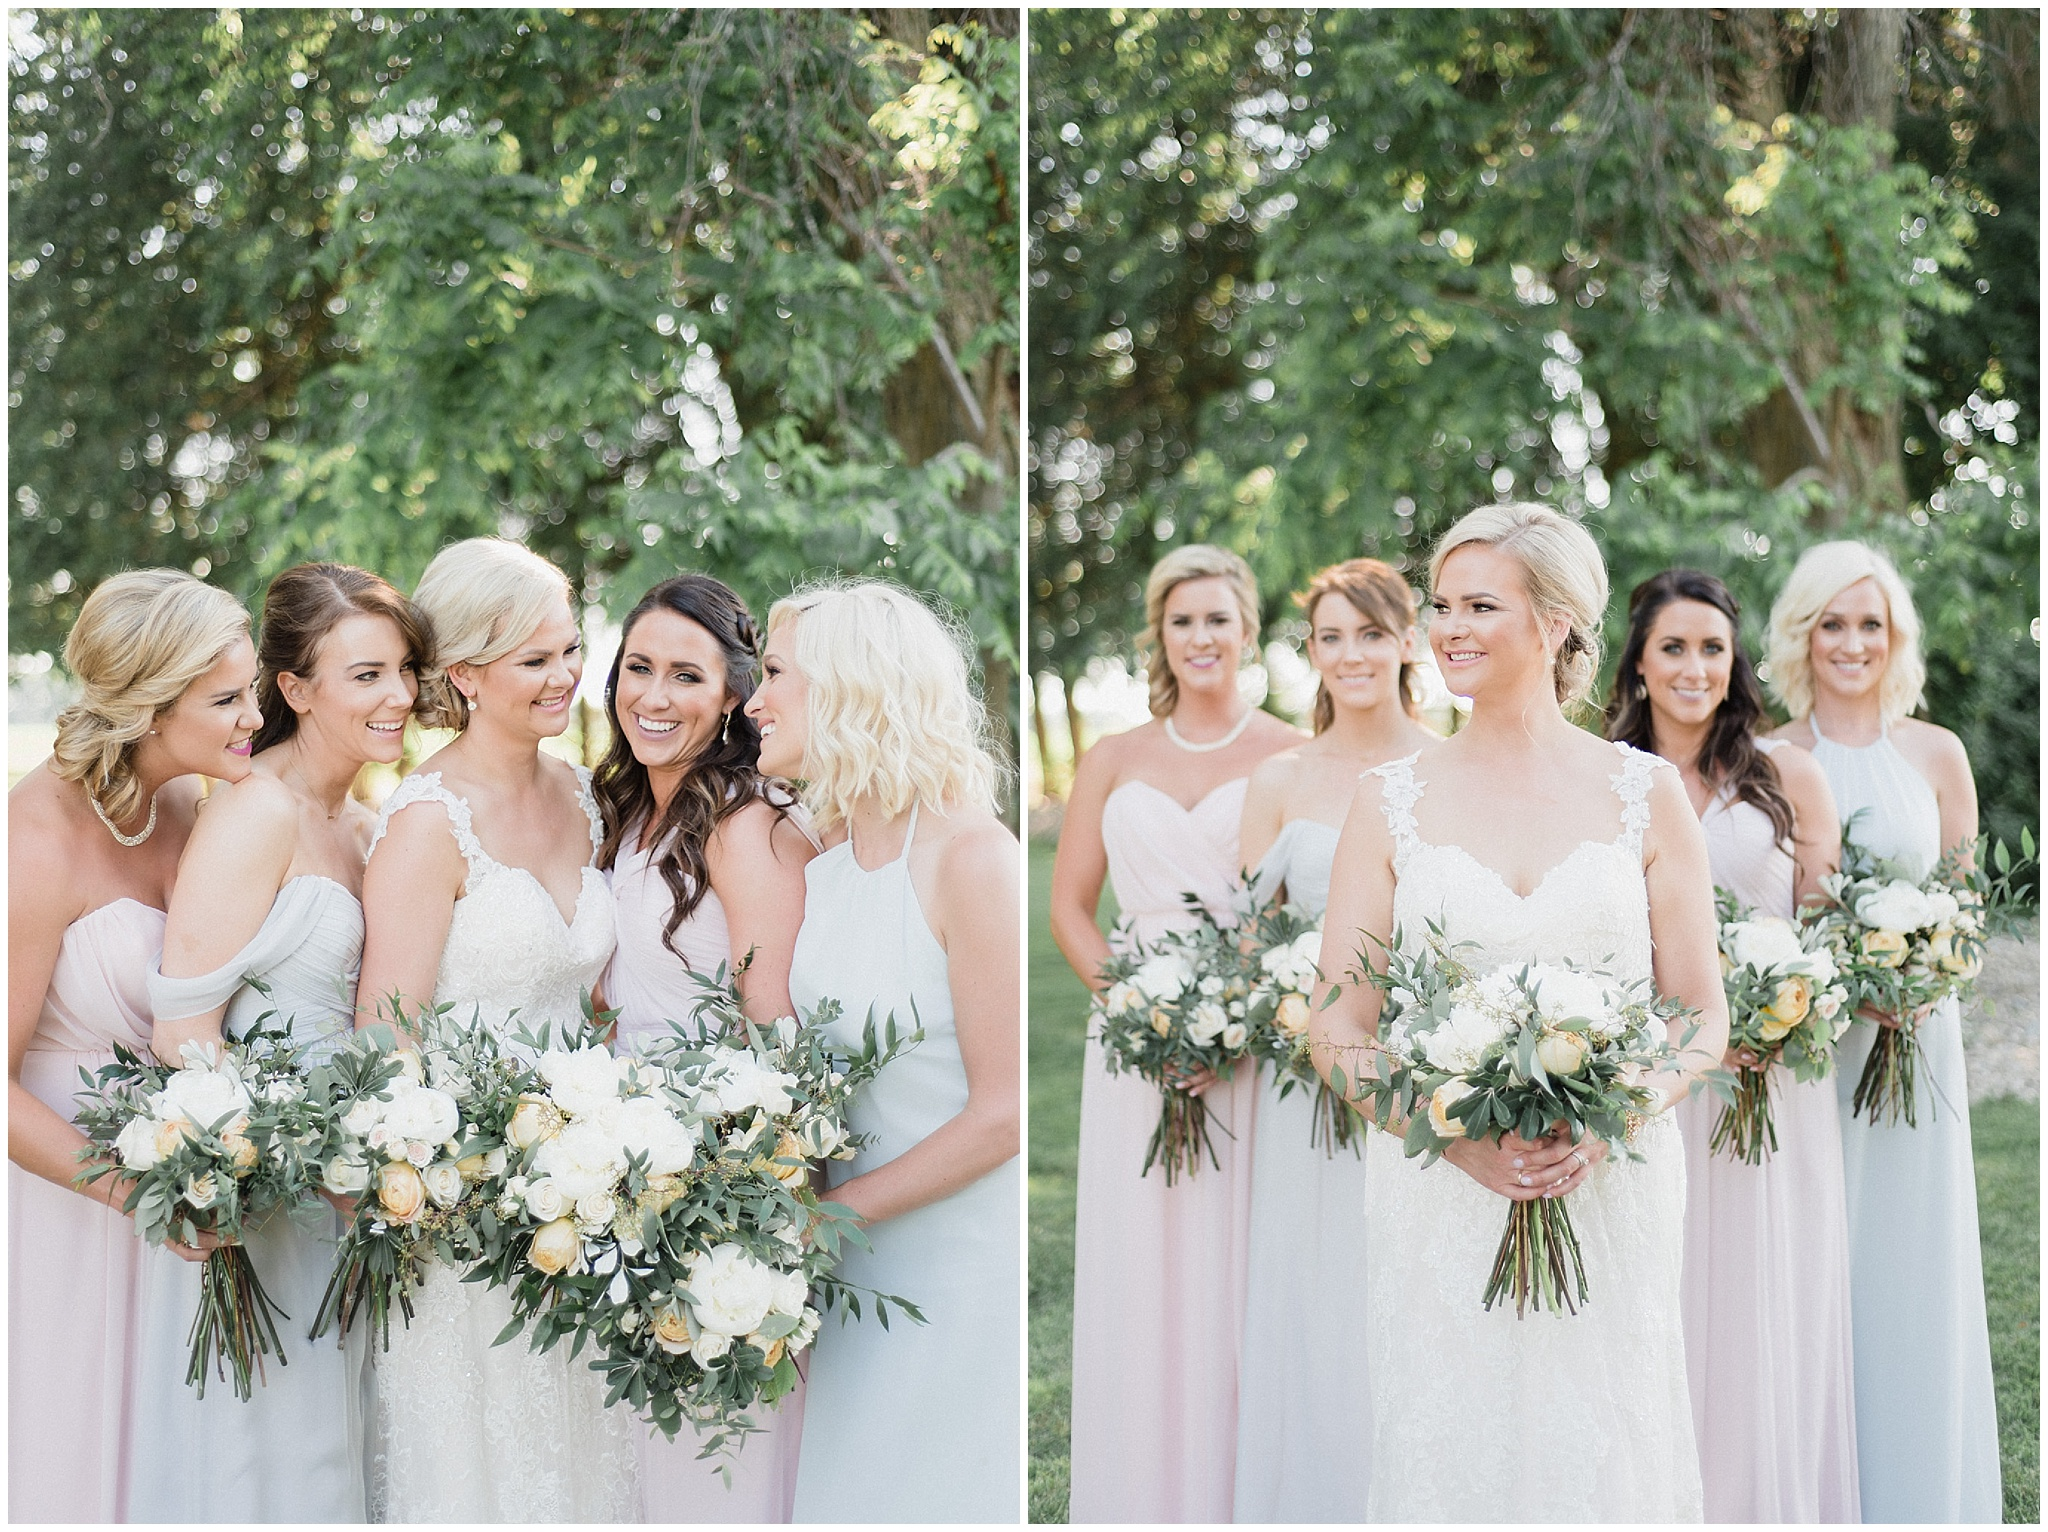 Mismatched pastel Amsale bridesmaids dresses |Tent wedding on family farm in Guelph, Ontario by Jenn Kavanagh Photography